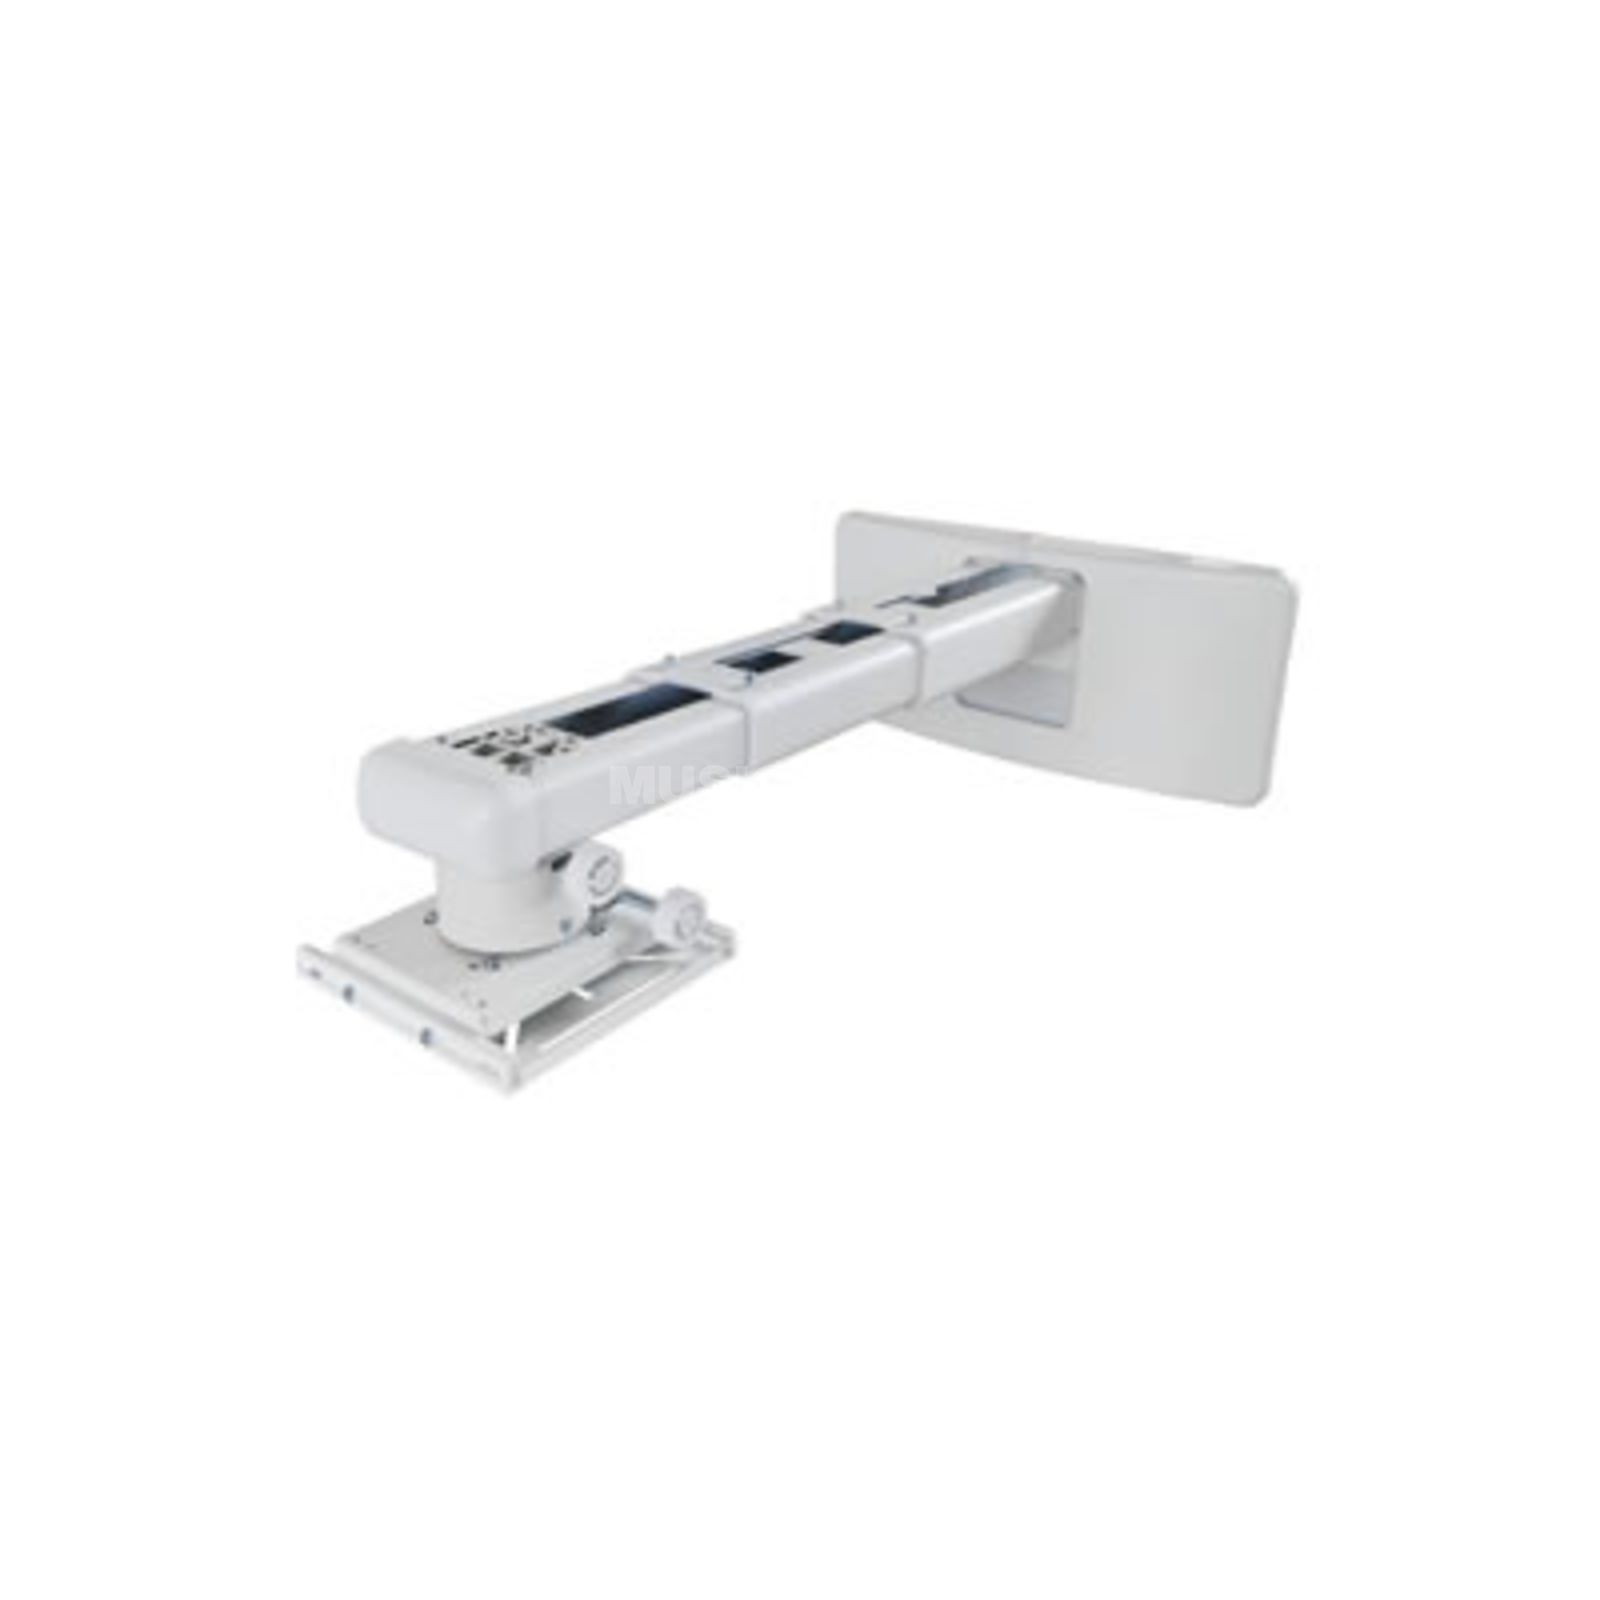 Optoma OWM3000 Beamer Wall-Mount Product Image